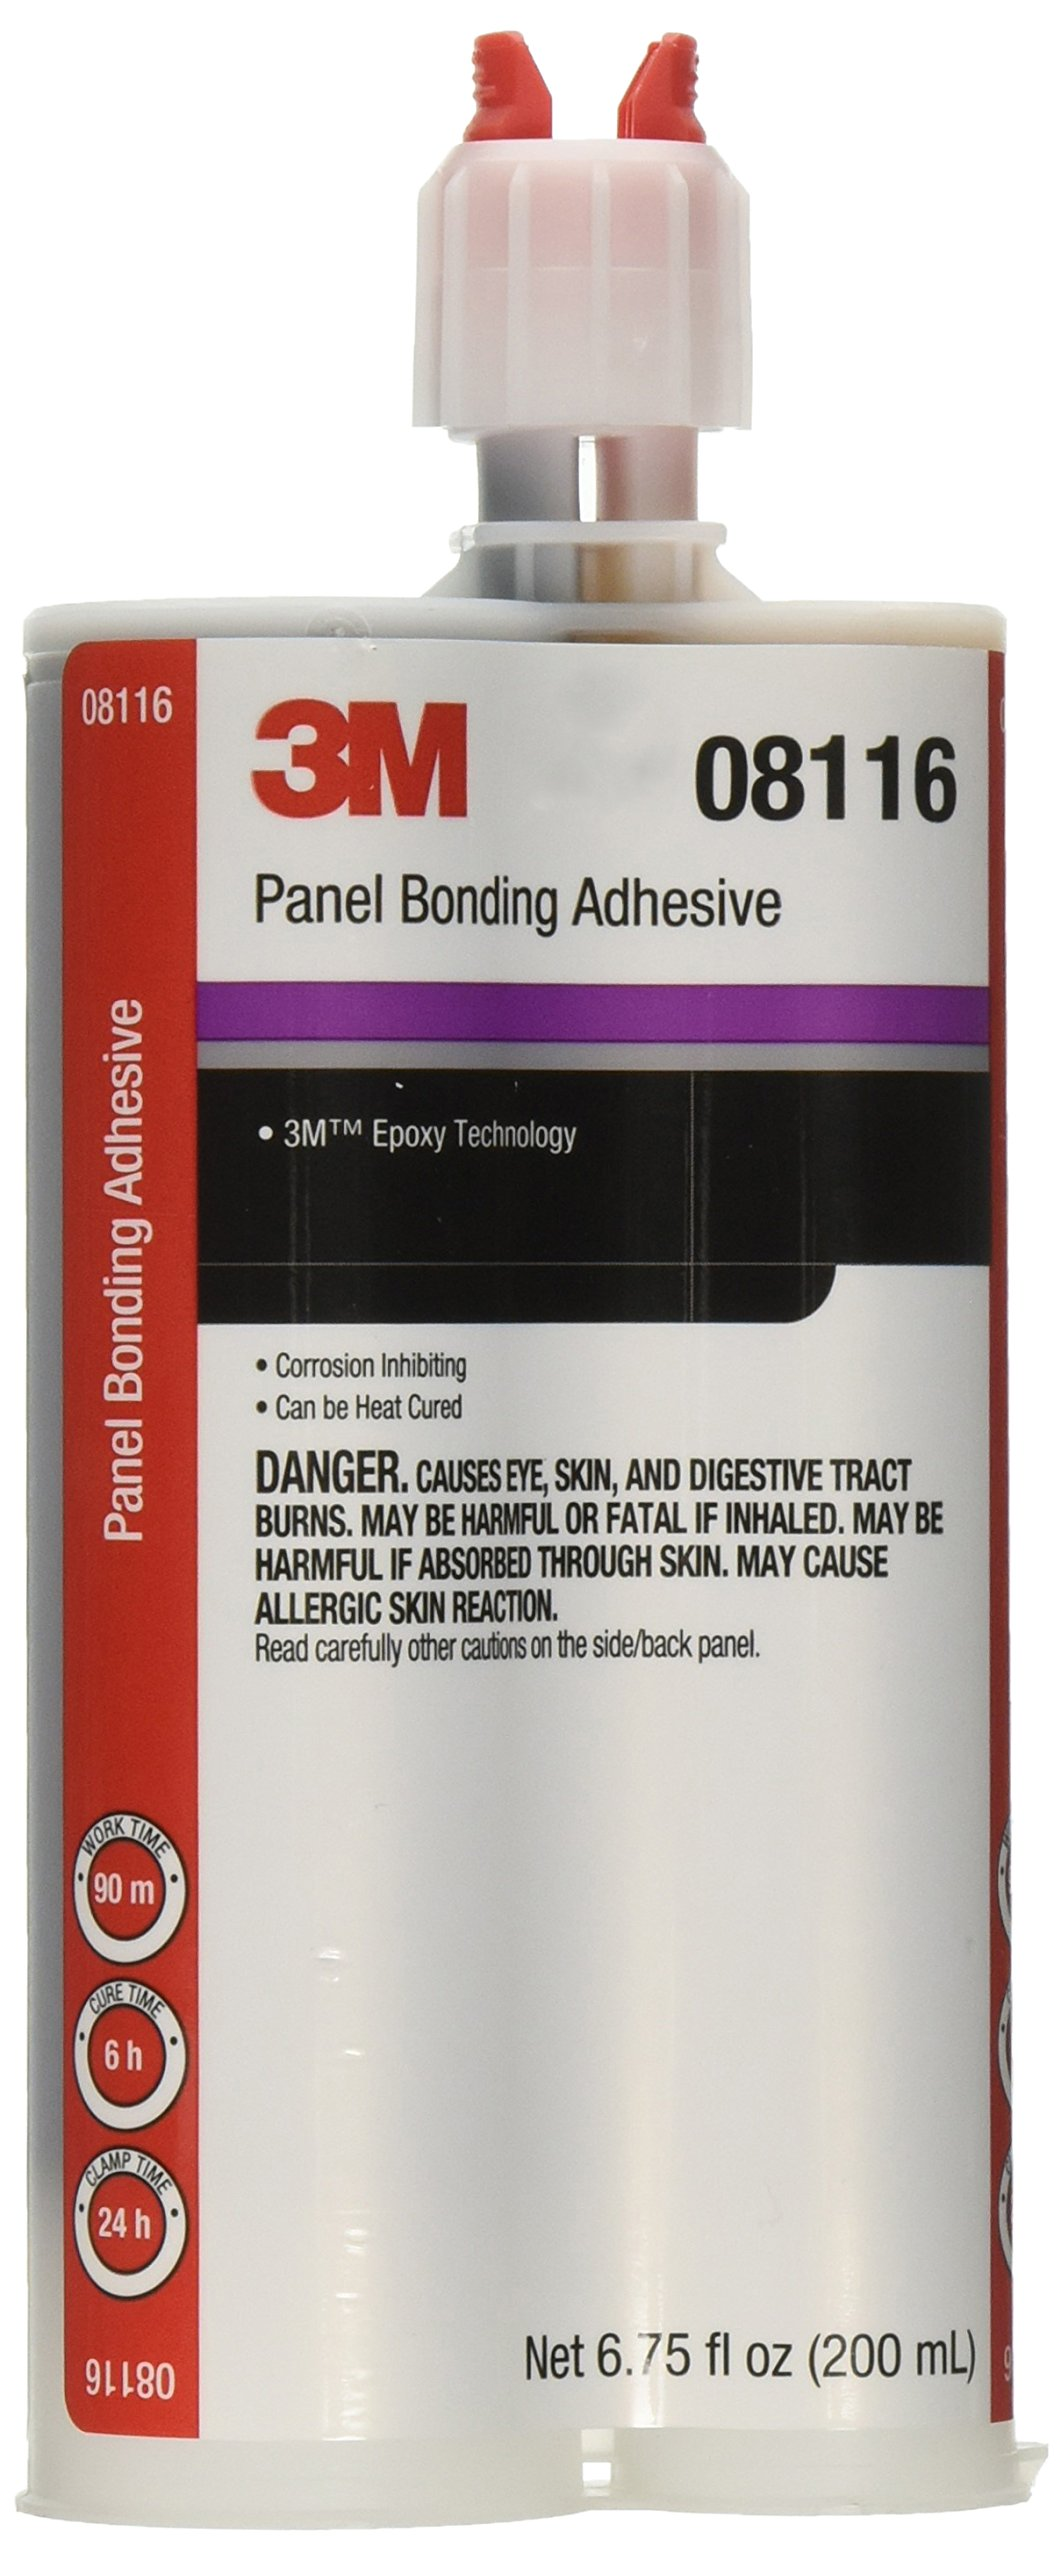 Cheap Panel Bonding Adhesive 3m, find Panel Bonding Adhesive